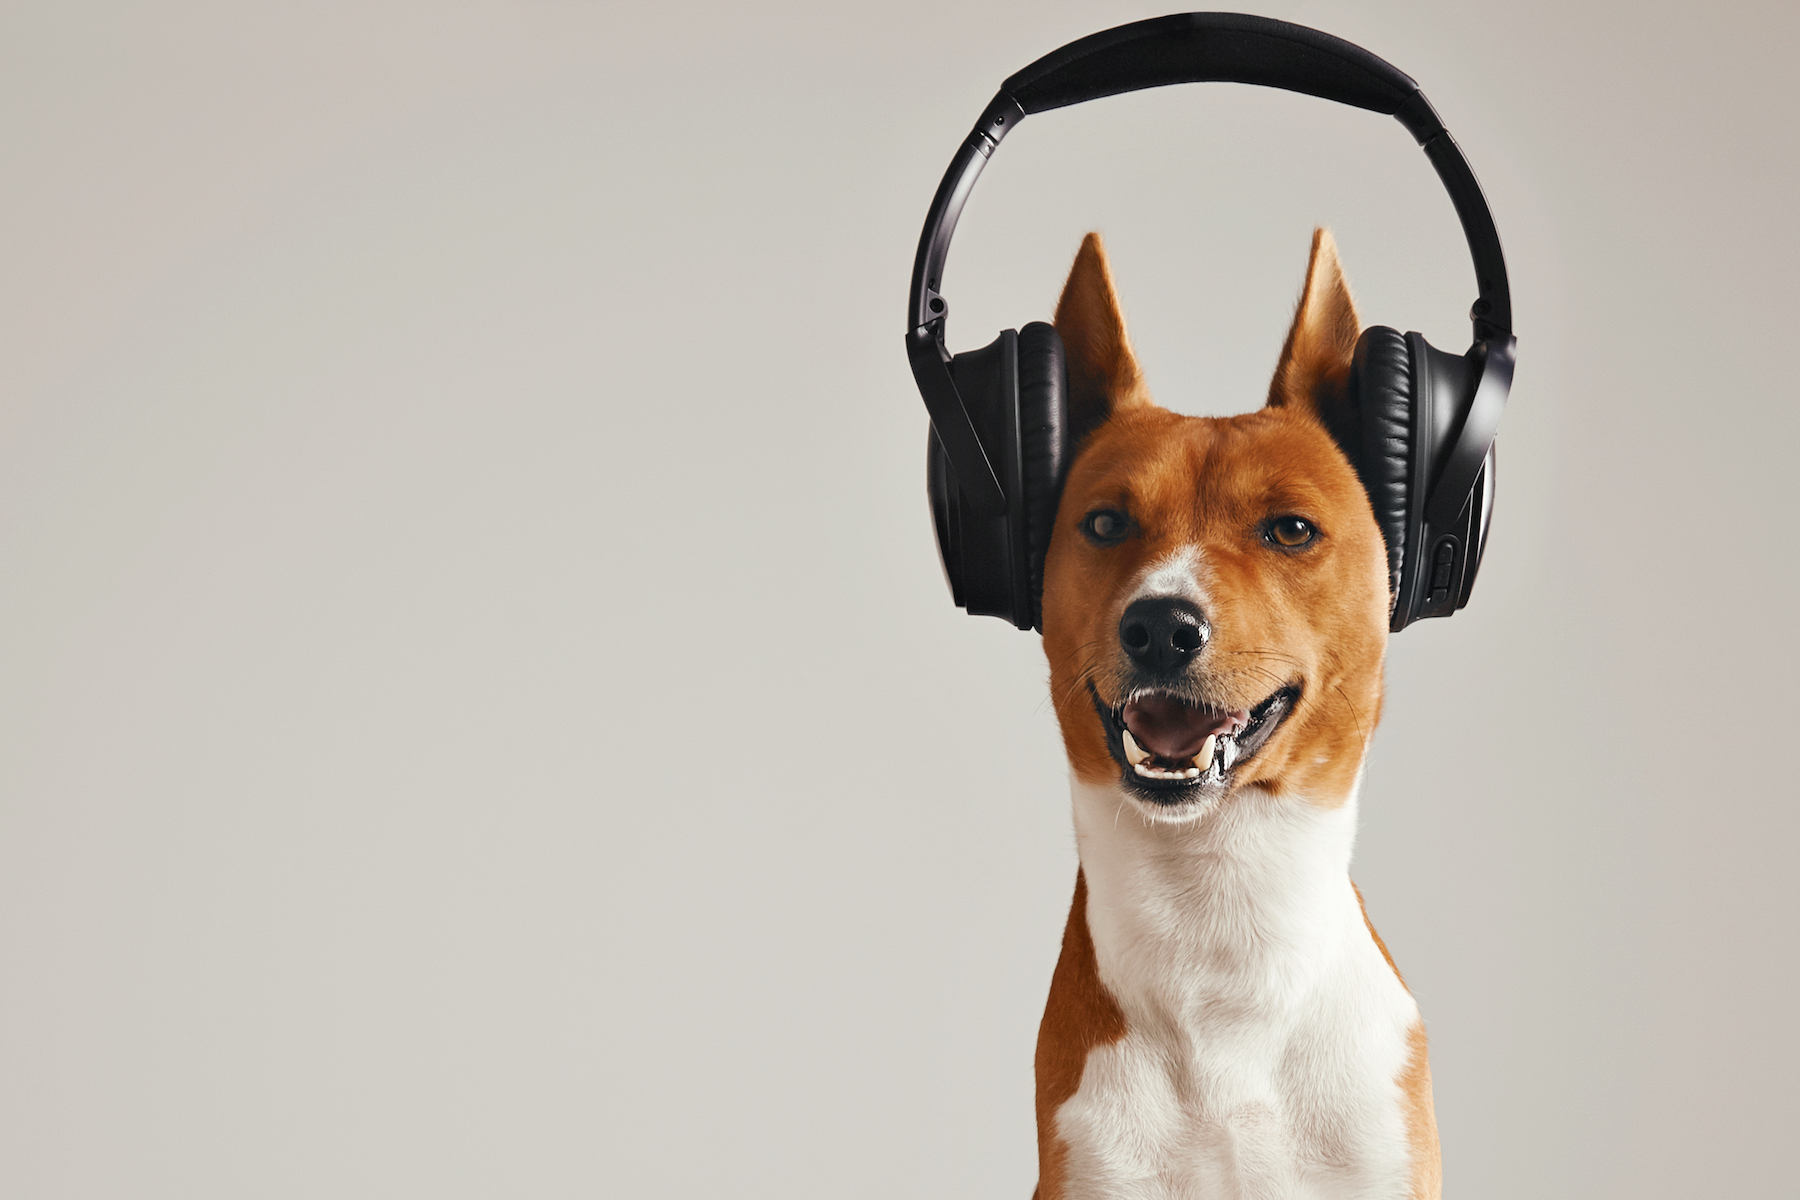 Canva - Happy basenji dog wearing headphones